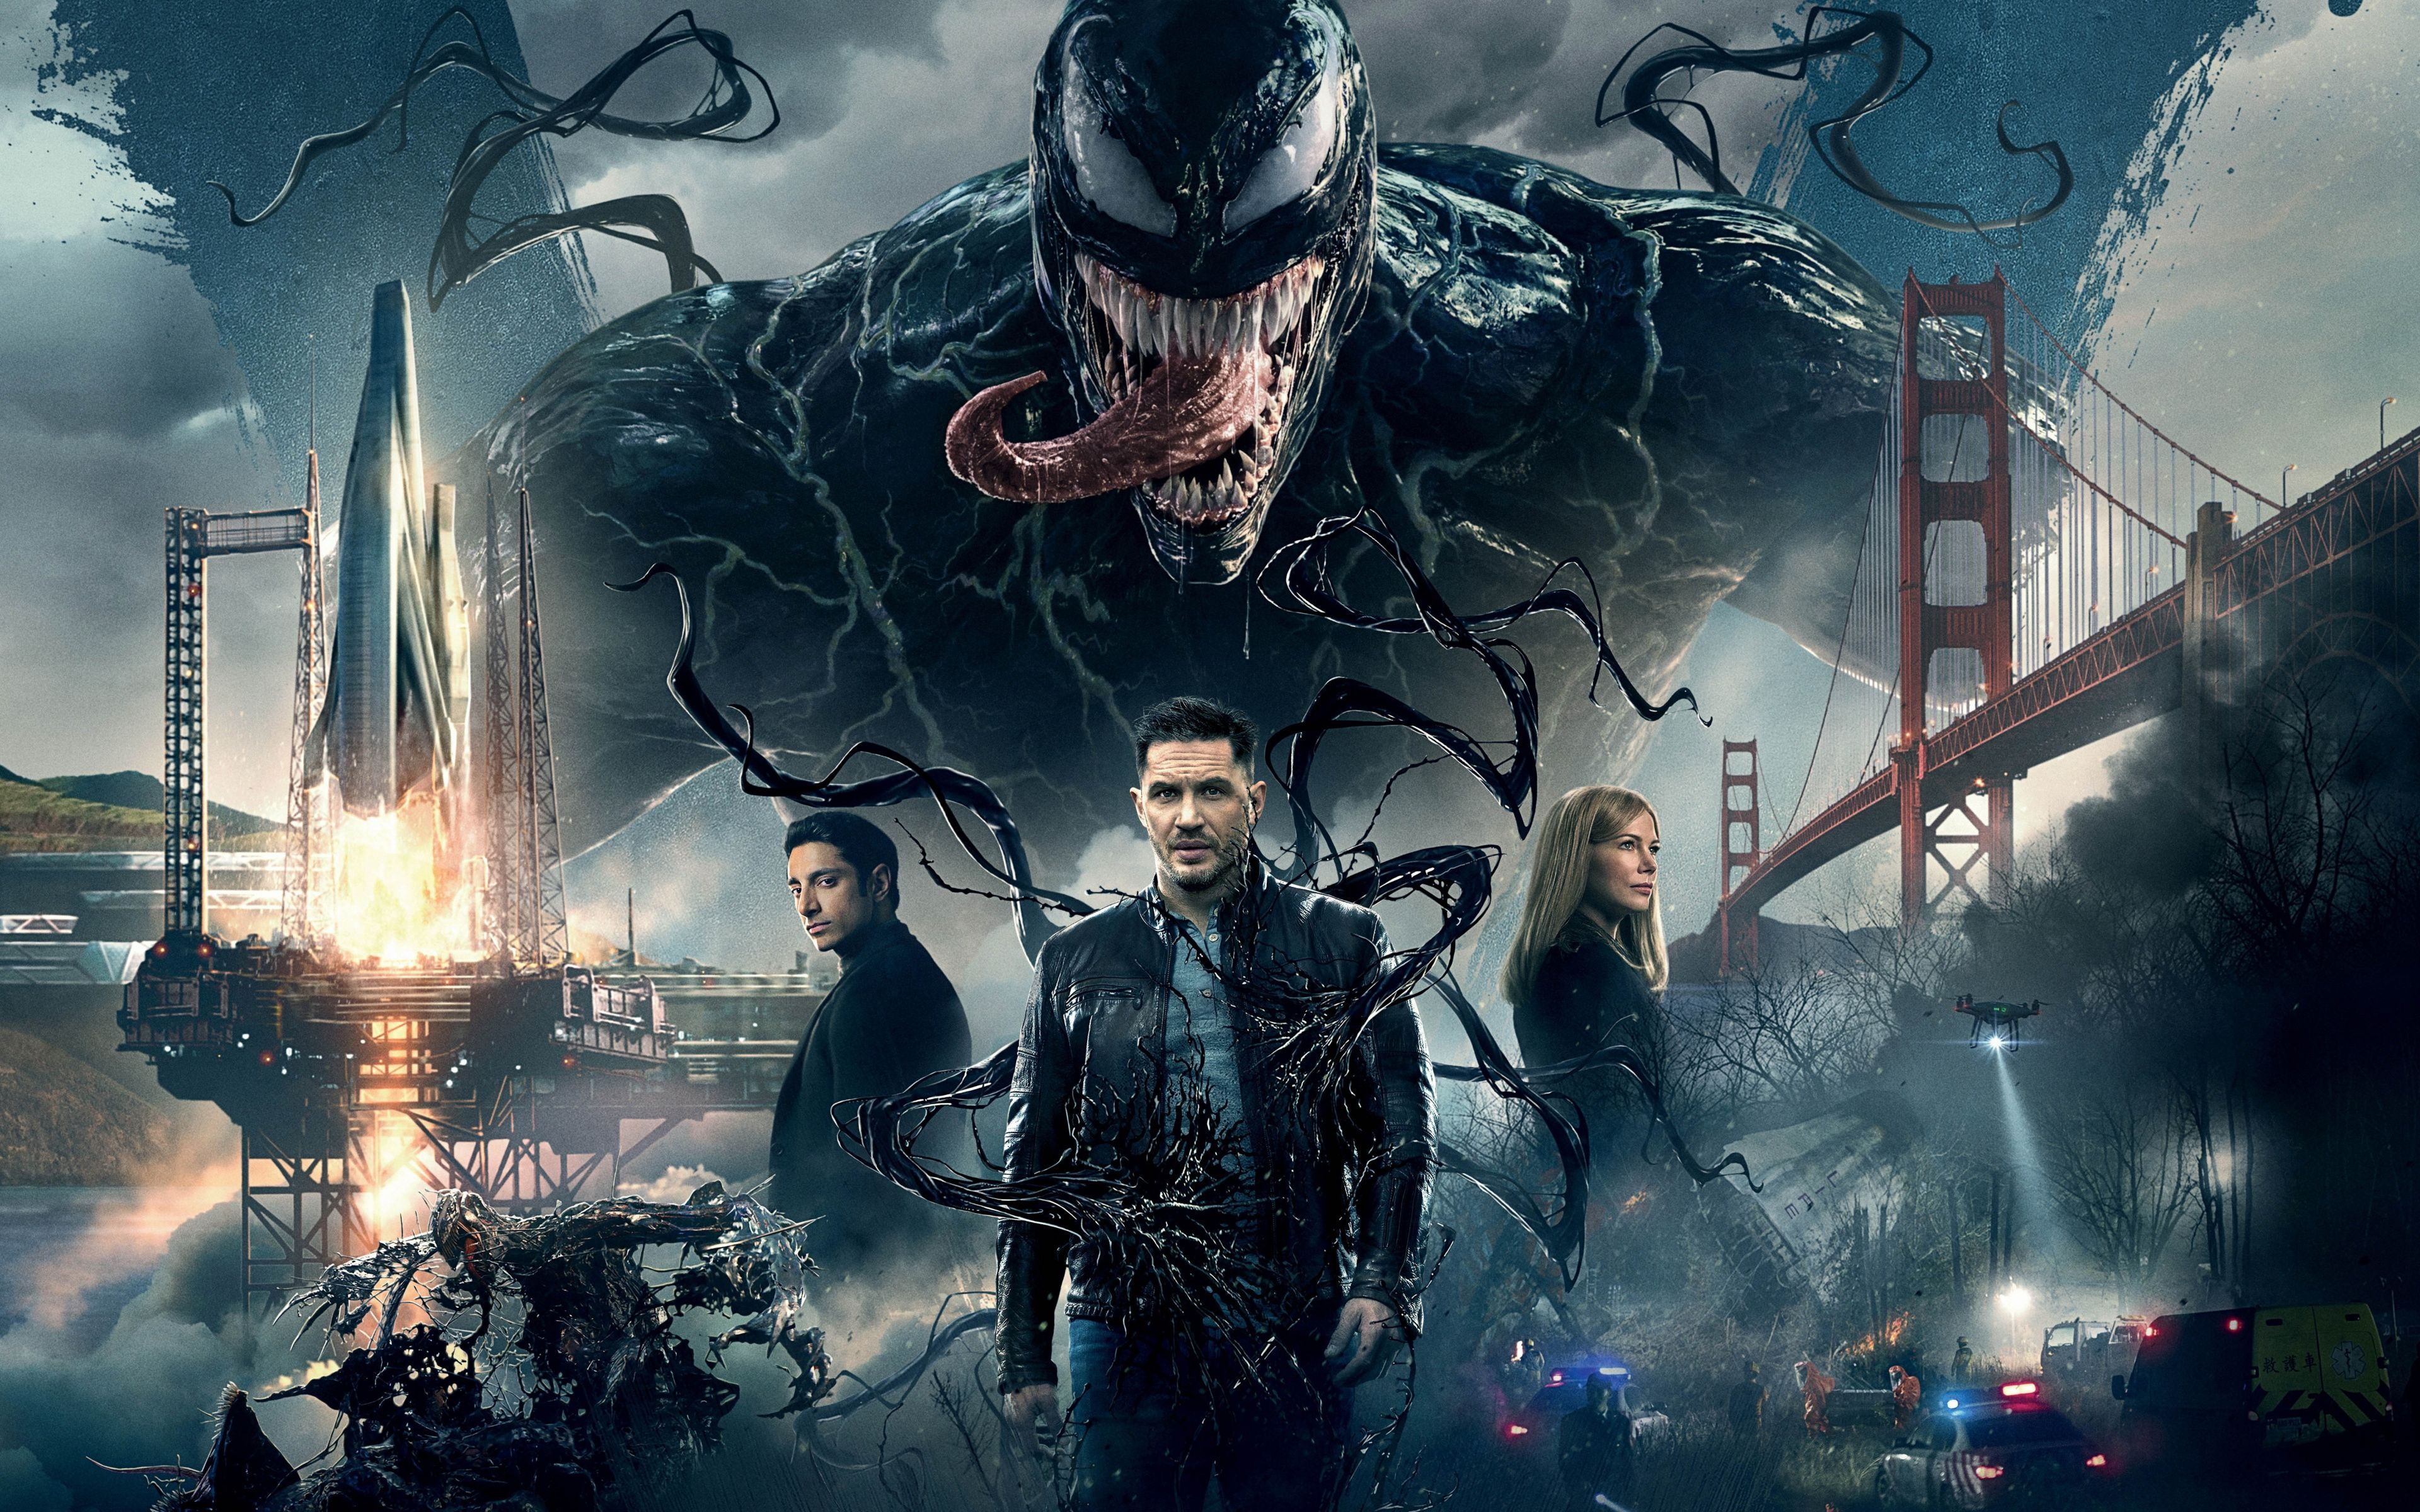 43 Venom Movie Wallpapers Hd 4k 5k For Pc And Mobile Download Free Images For Iphone Android